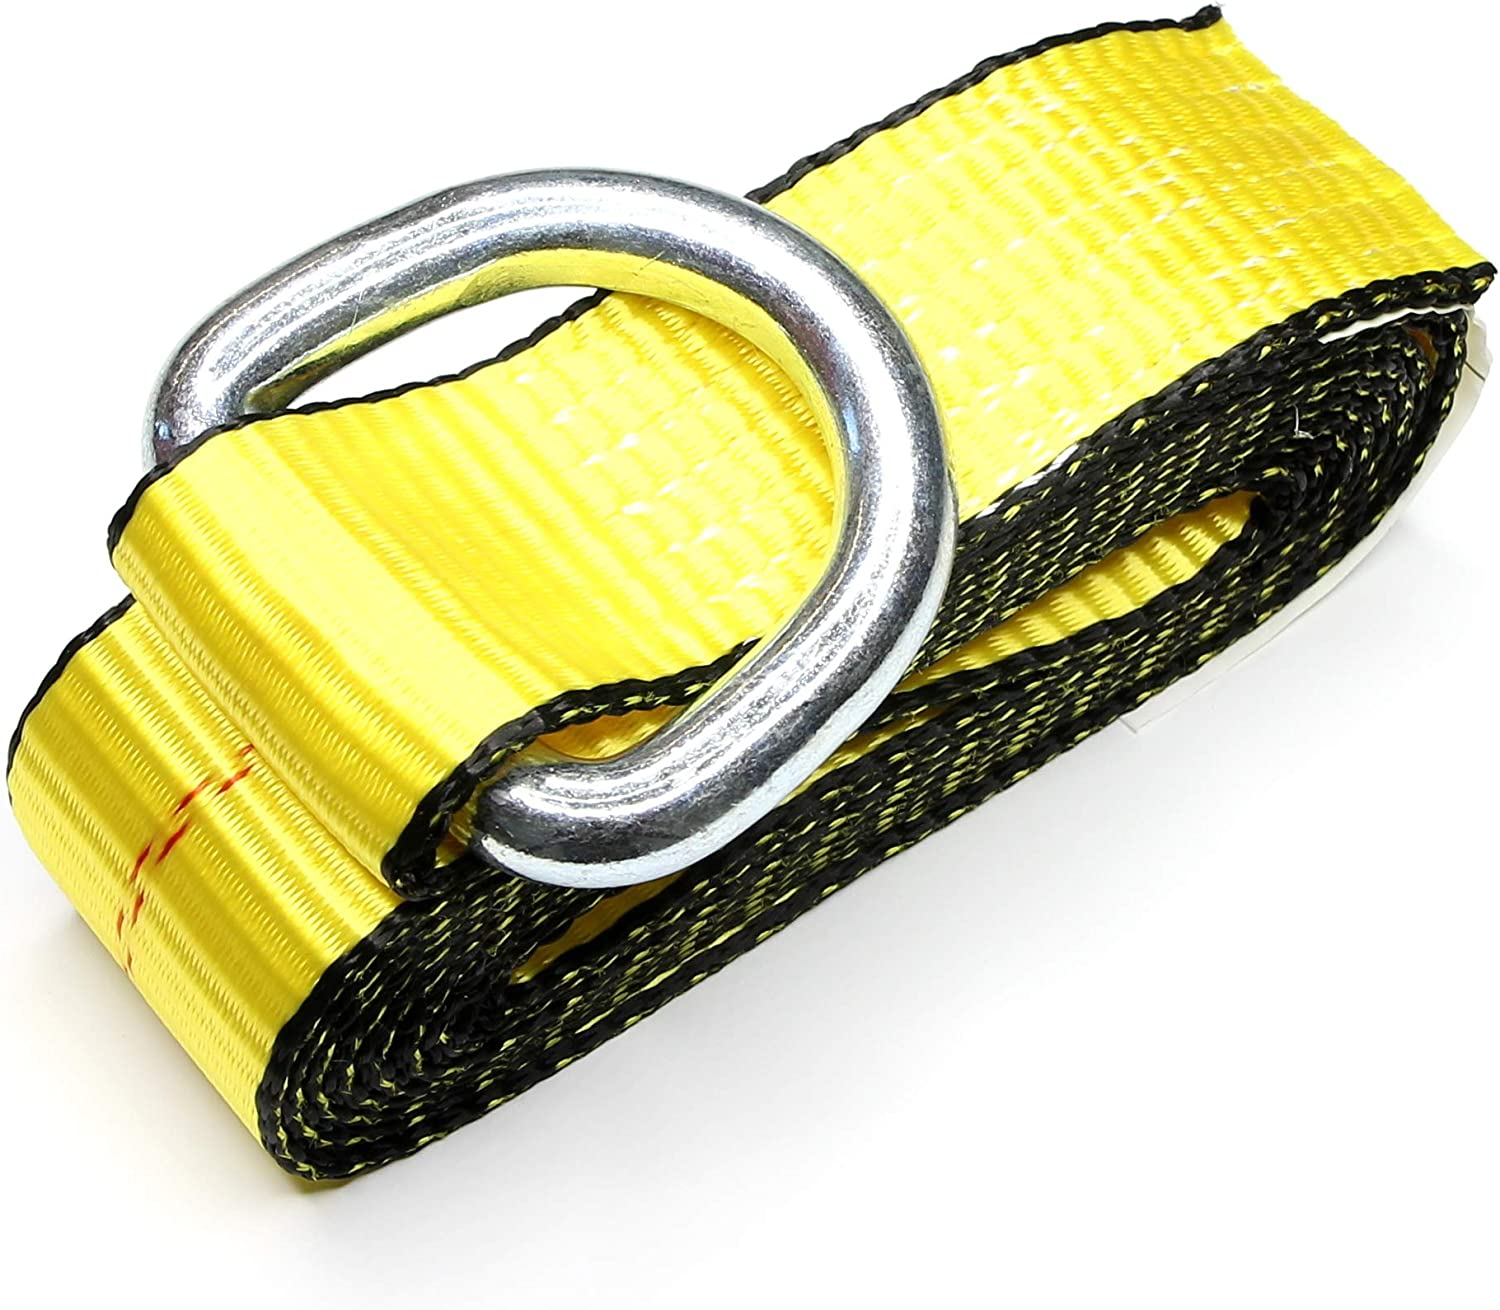 2 X 12ft Feet Lasso Strap with D Ring Auto Tie Down Pack of 4